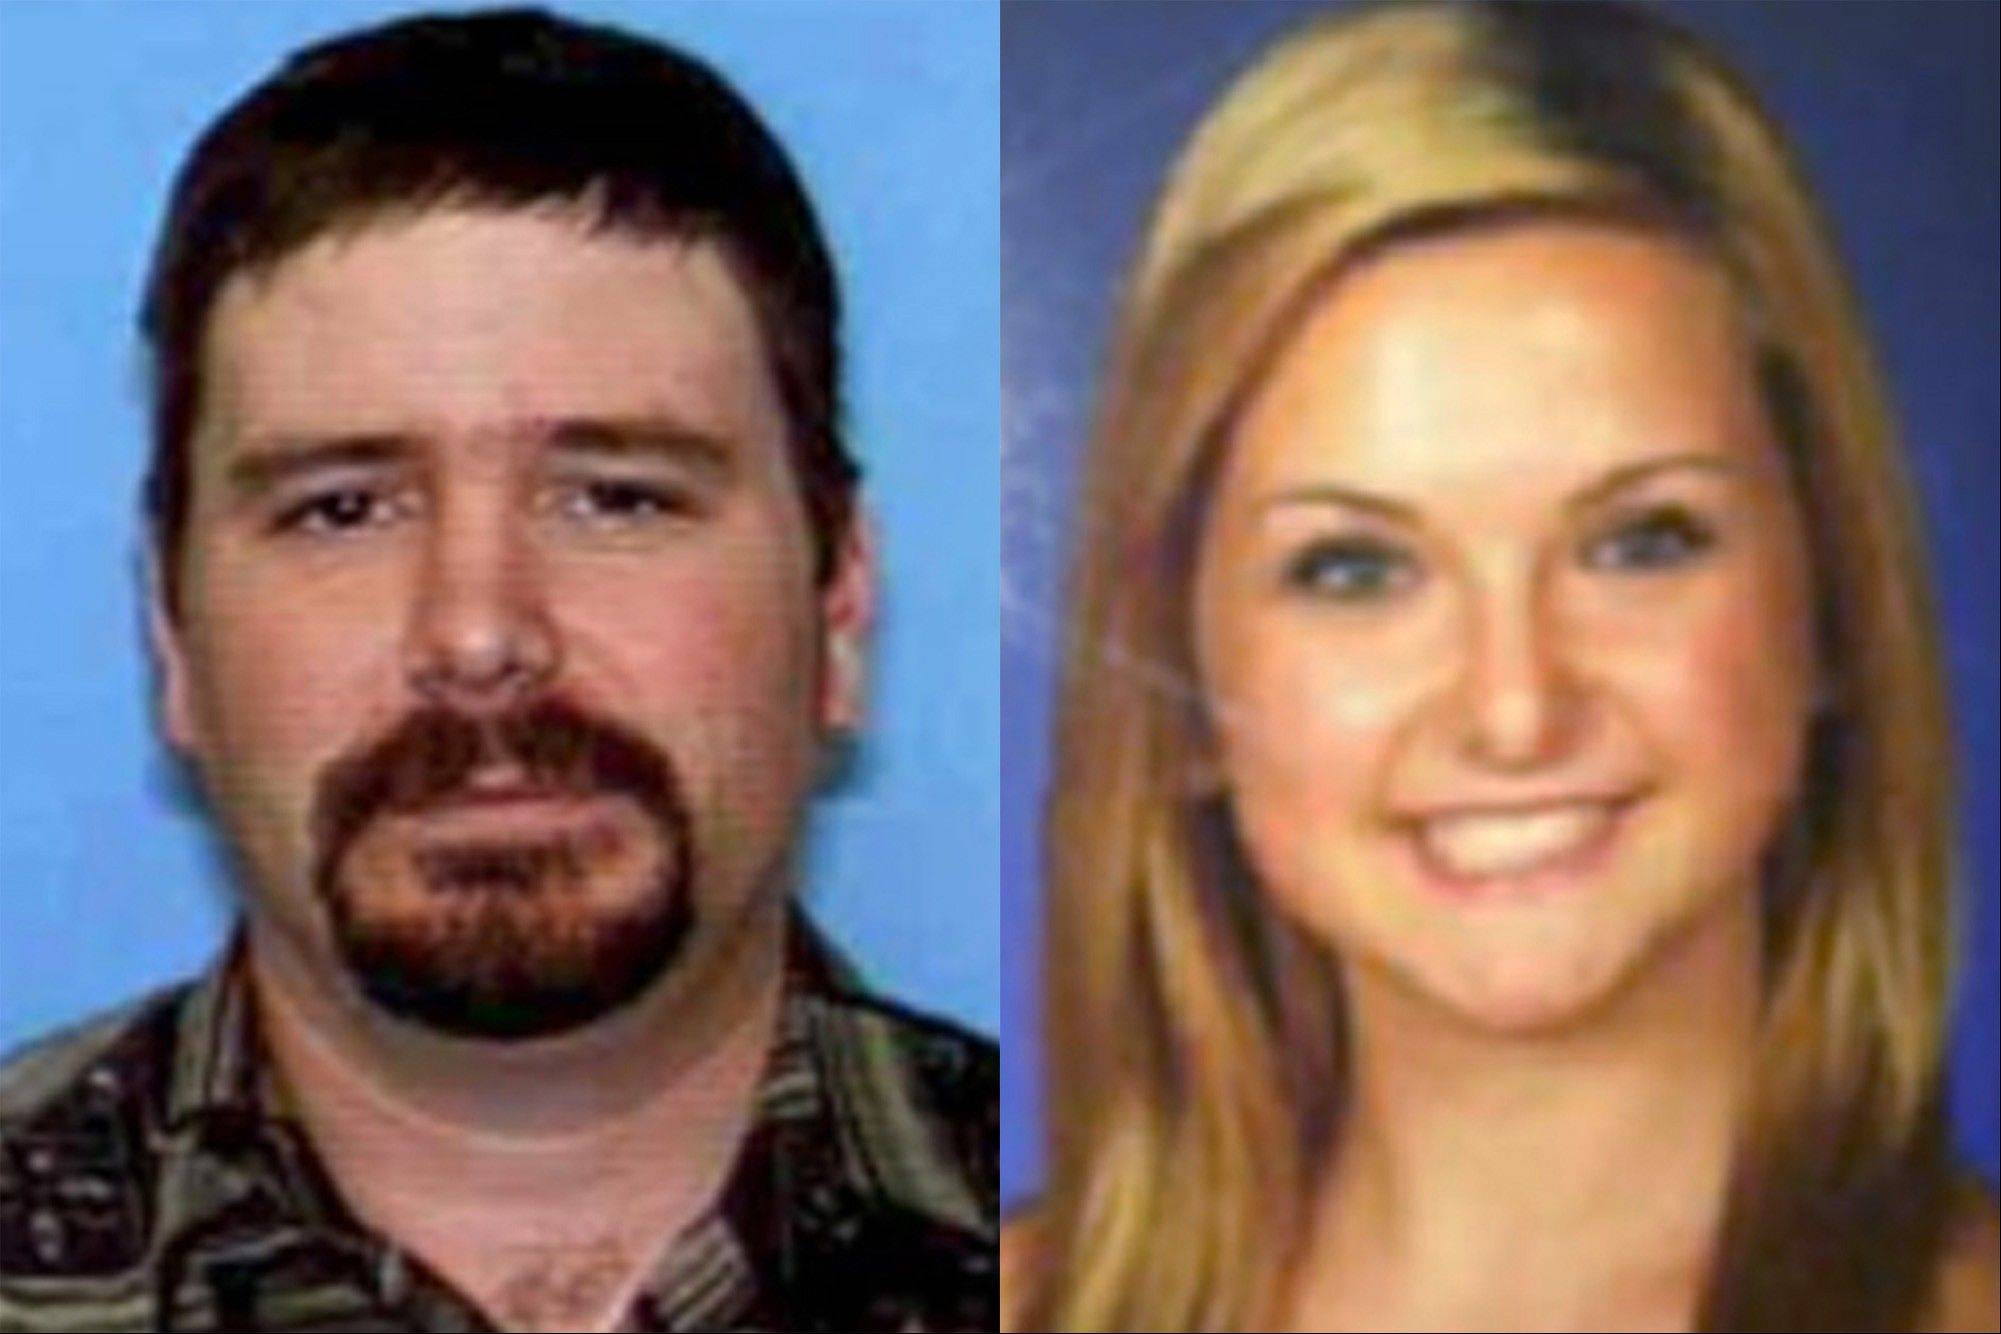 James Lee DiMaggio, 40, left, and Hannah Anderson, 16. Anderson went online barely 48 hours after her rescue Saturday Aug. 10, 2013 and started fielding hundreds of questions through a social media site.